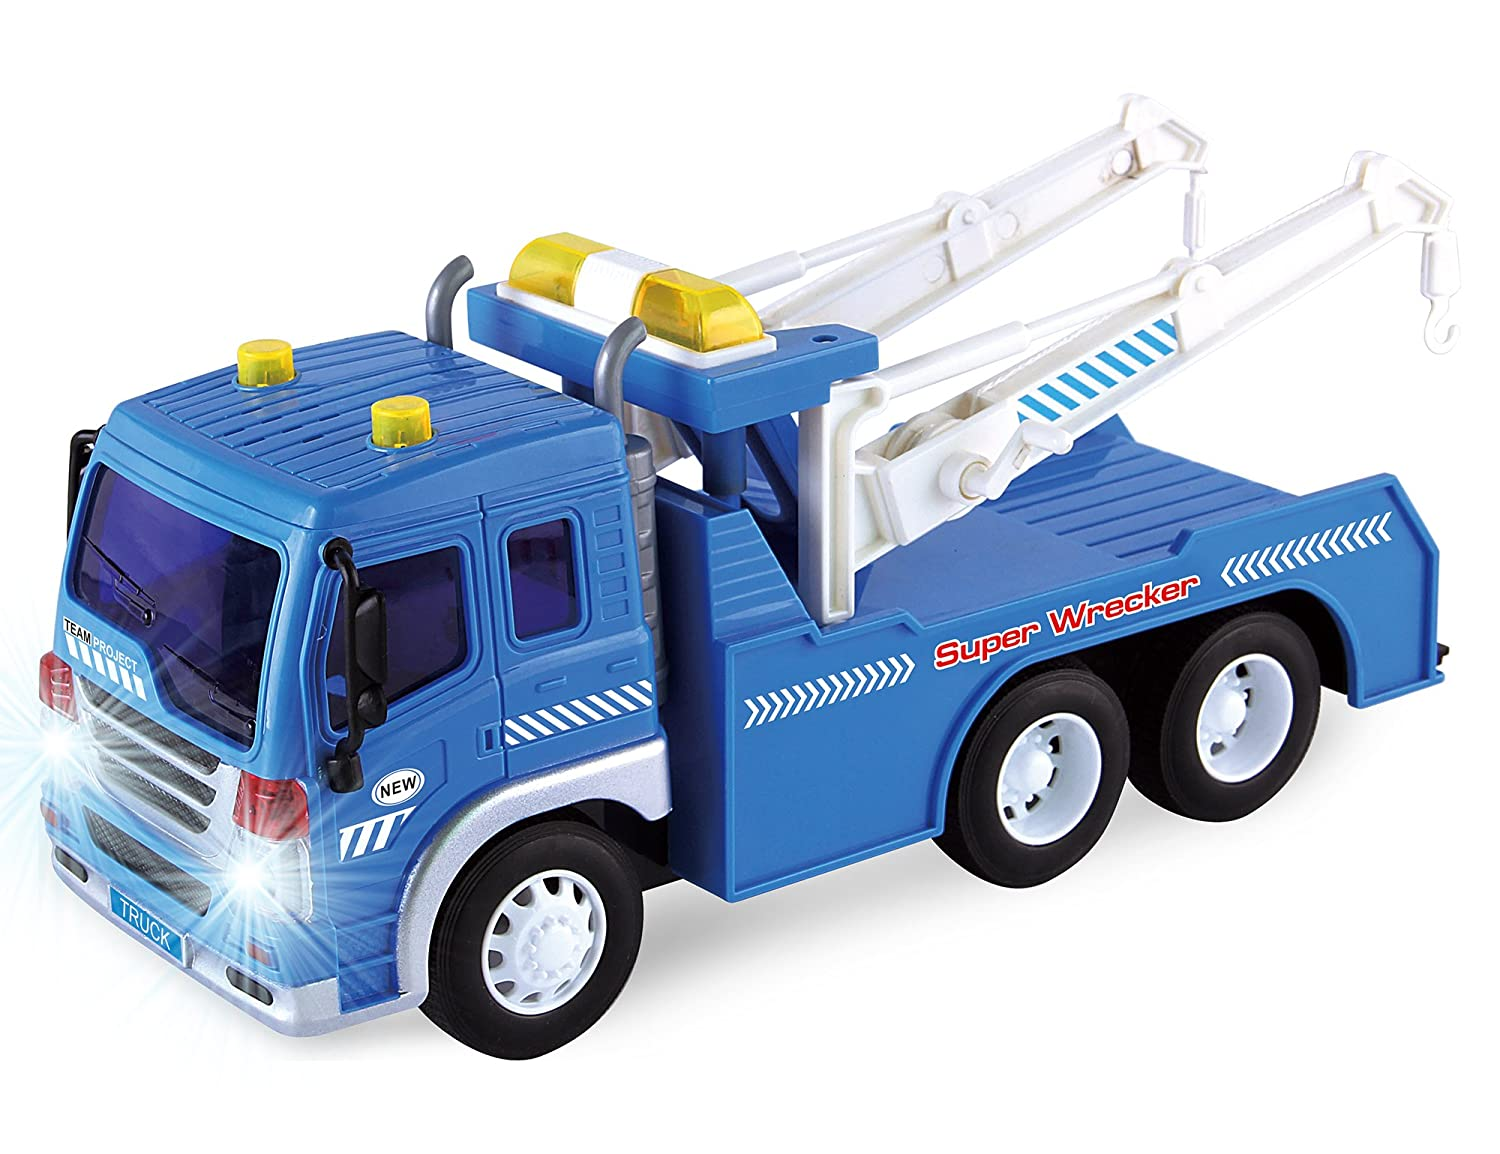 Friction Powered Wrecker Tow Truck 1:16 Toy Towing Vehicle with Lights and Sounds (Double Hooks) Liberty Imports